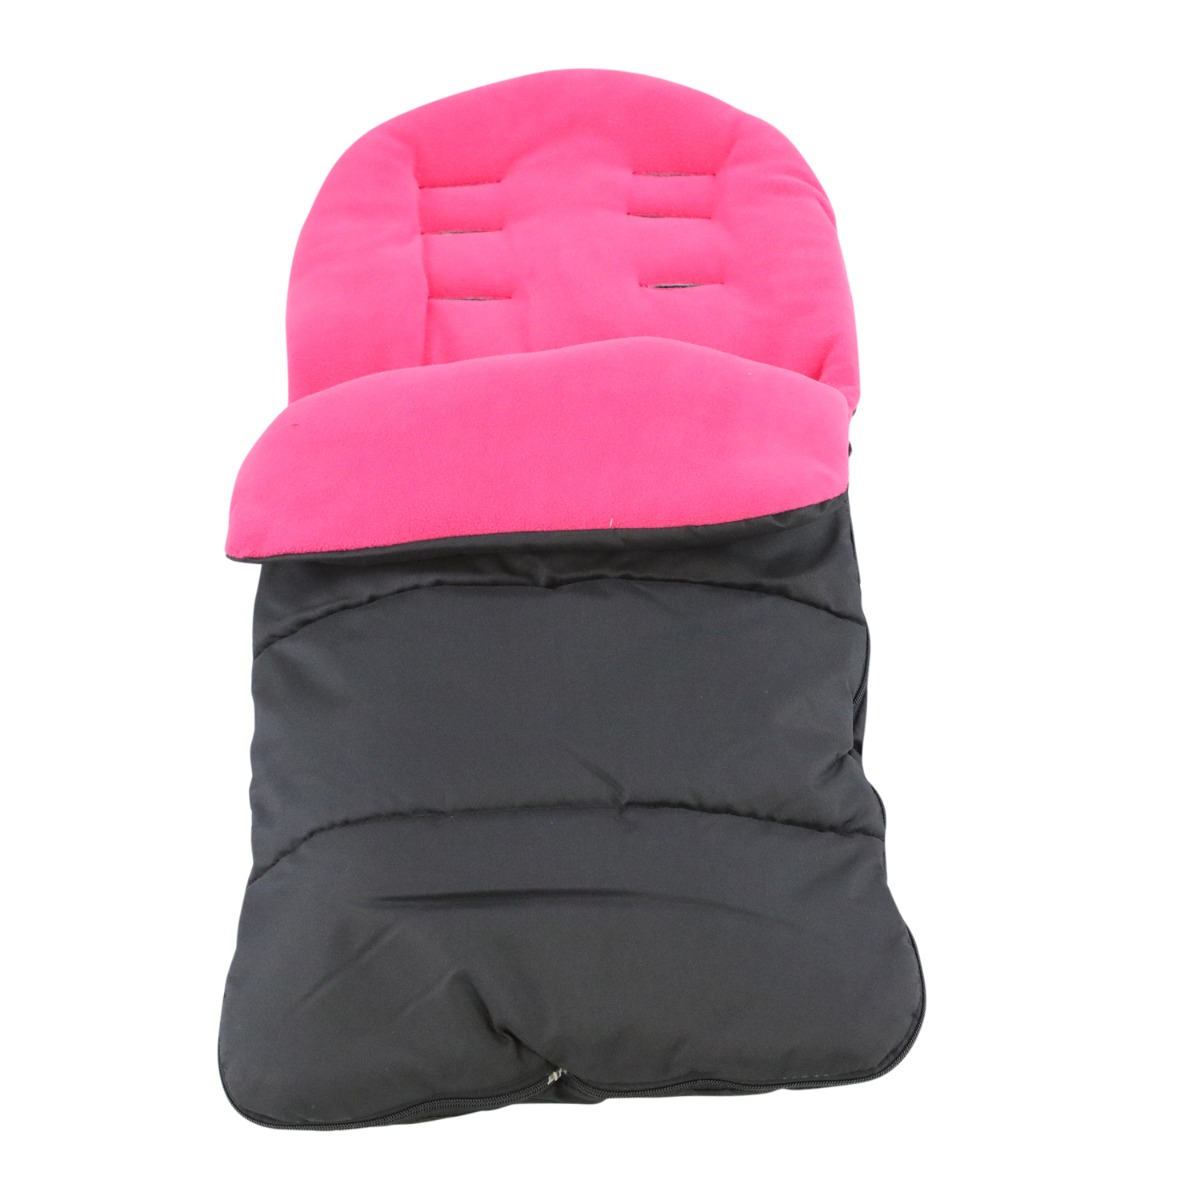 Universal-Pushchair-Footmuff-Cosytoes-Fleece-Lined-Fit-For-Stroller-Prams-Buggy thumbnail 42